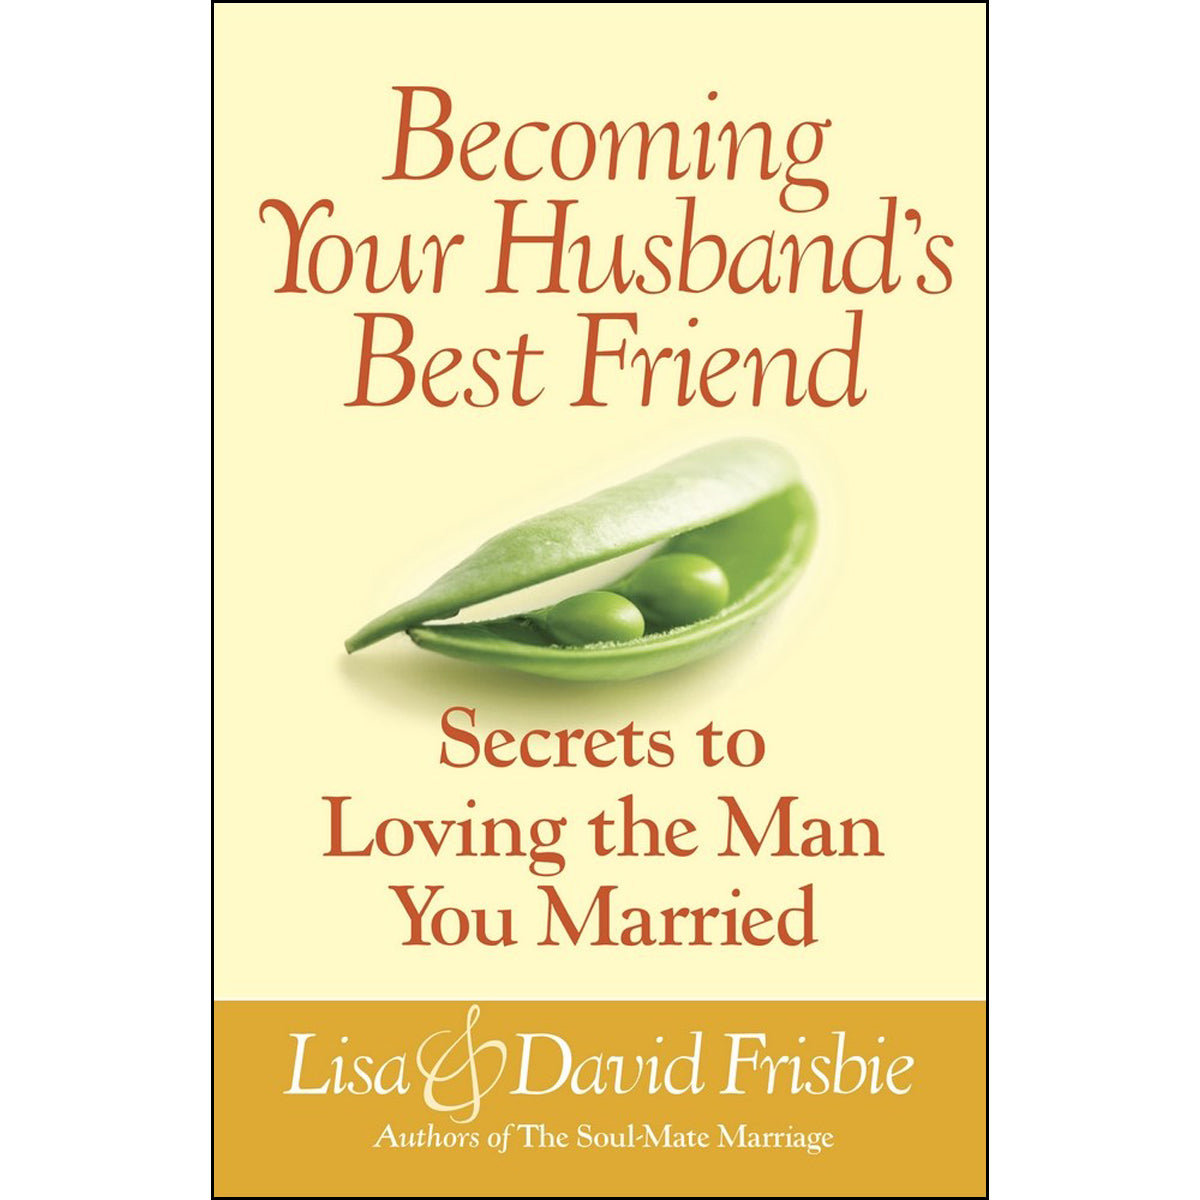 Becoming Your Husband's Best Friend (Paperback)